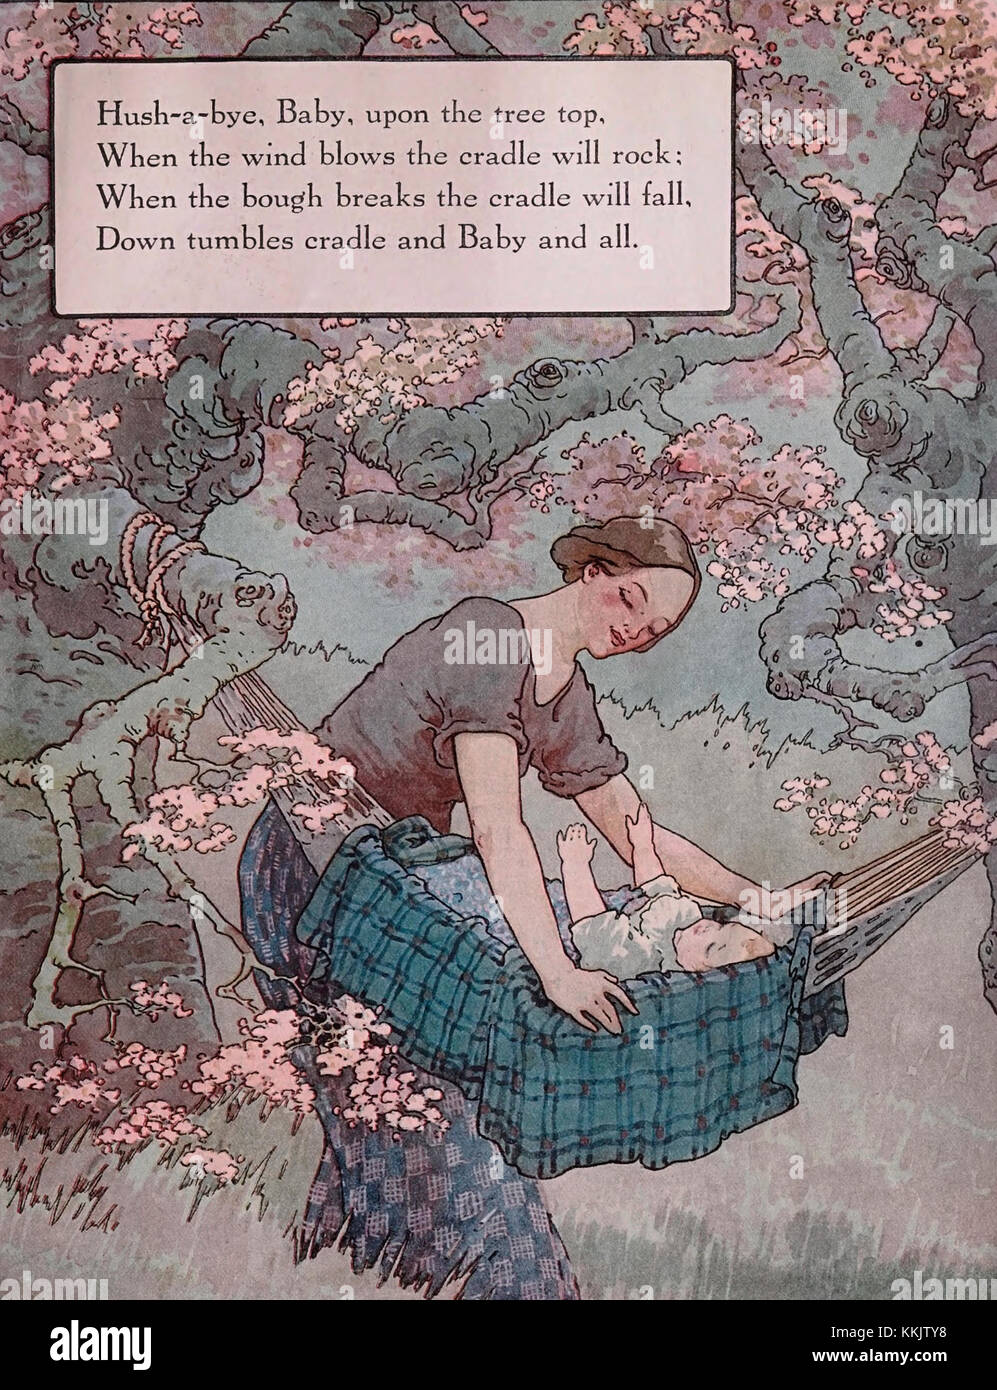 Nursery Rhyme Stock Photos & Nursery Rhyme Stock Images - Alamy